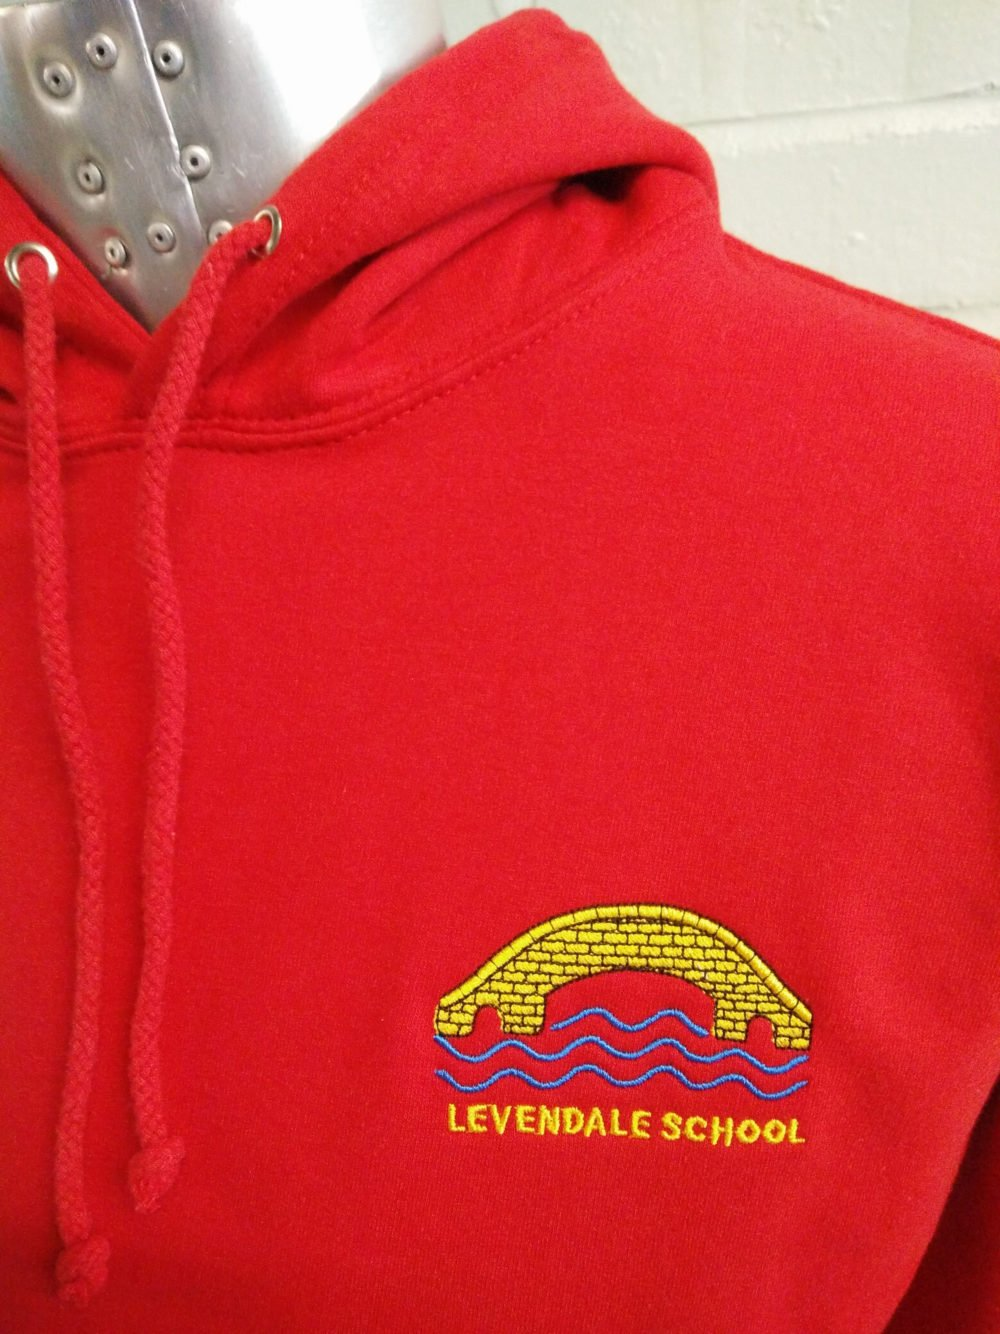 Levendale School 2017 Leavers Hoodies